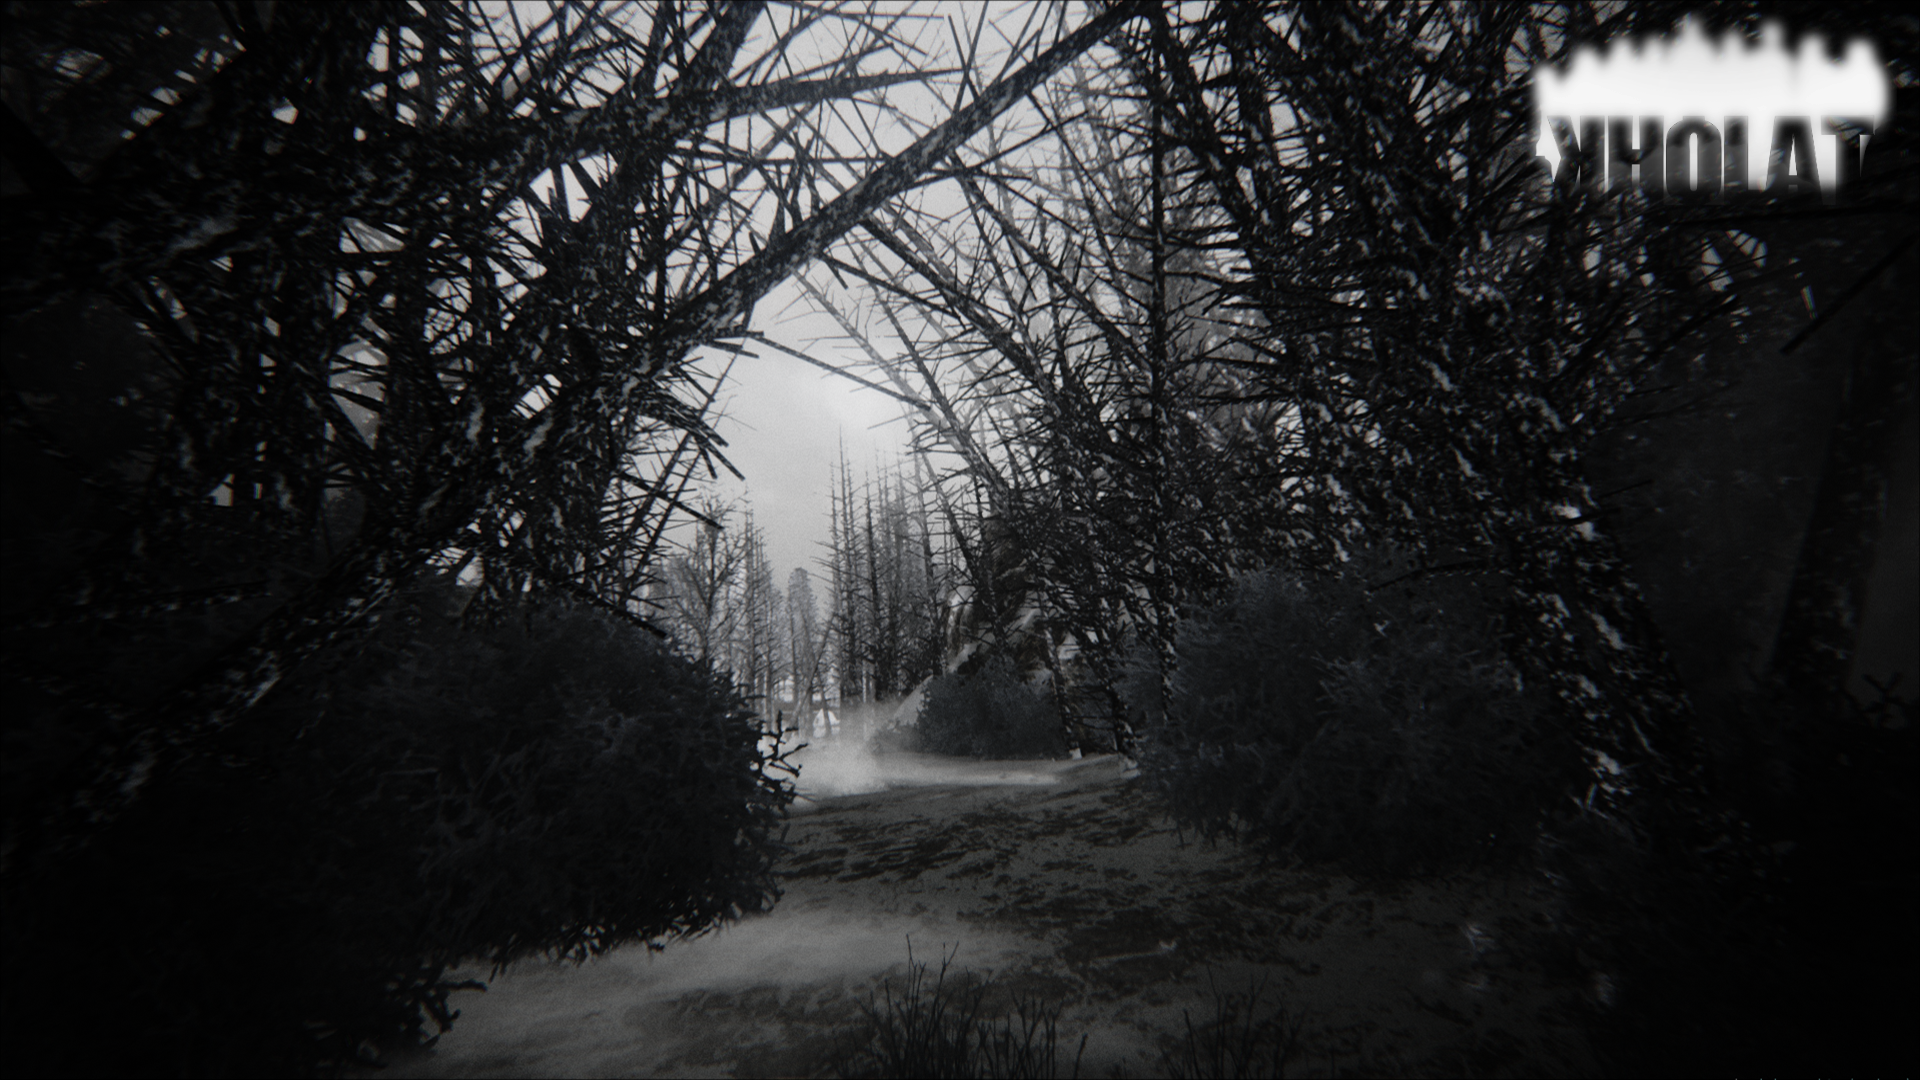 Kholat - 15 Minutes of 1080p 60FPS Gameplay of the Unreal